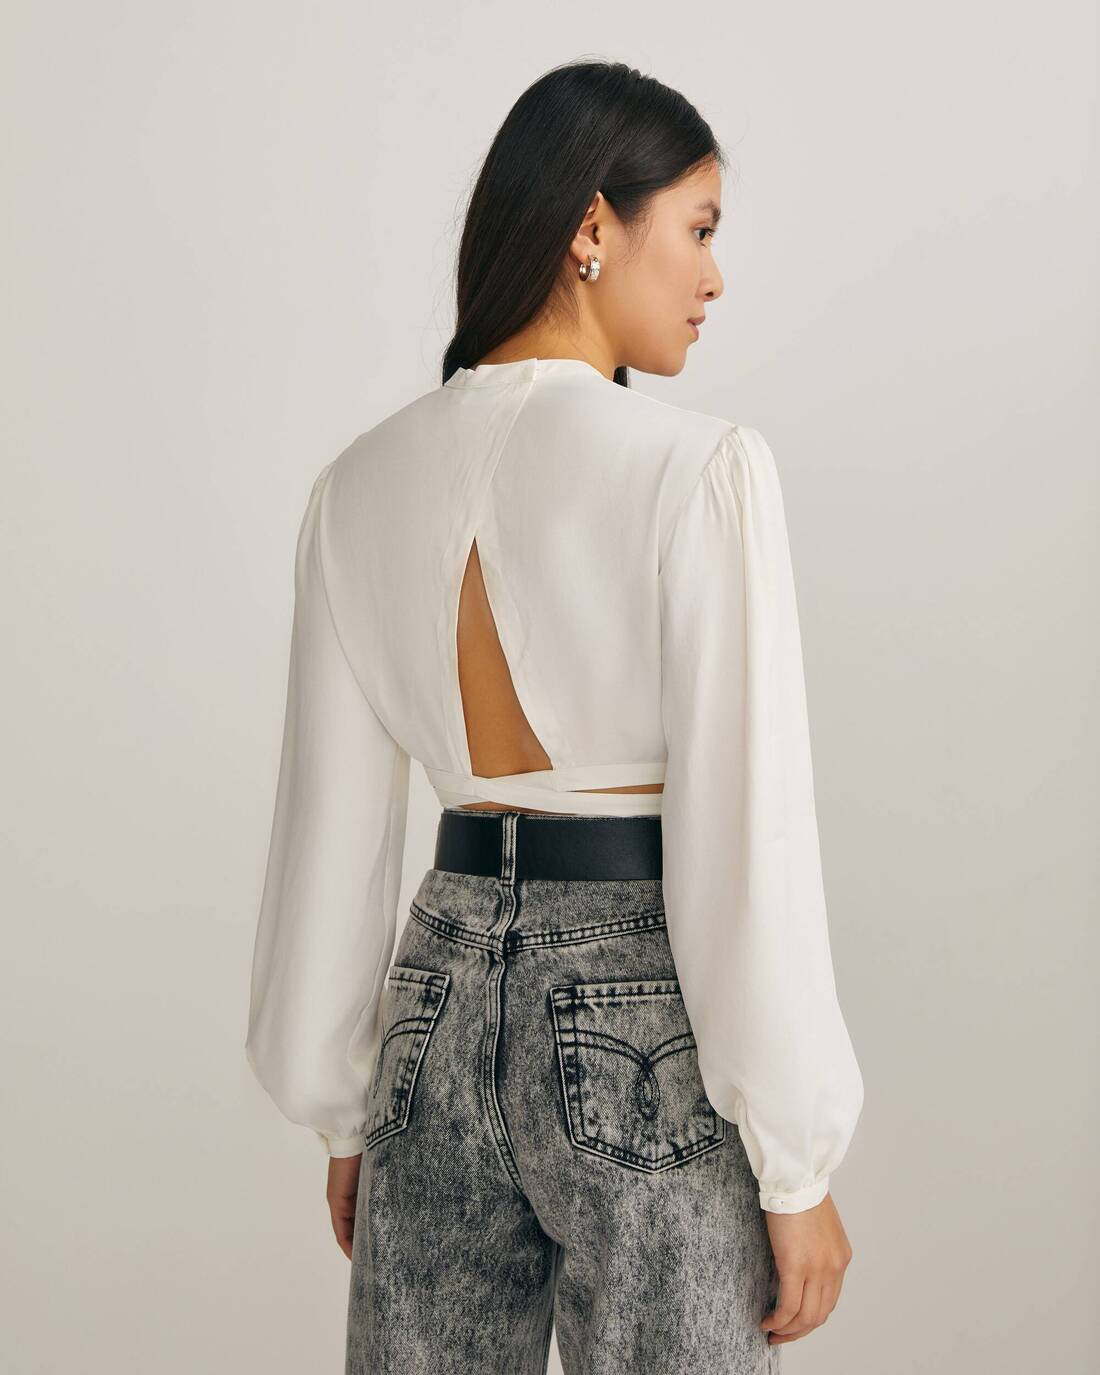 Cropped blouse with open back and puff sleeves